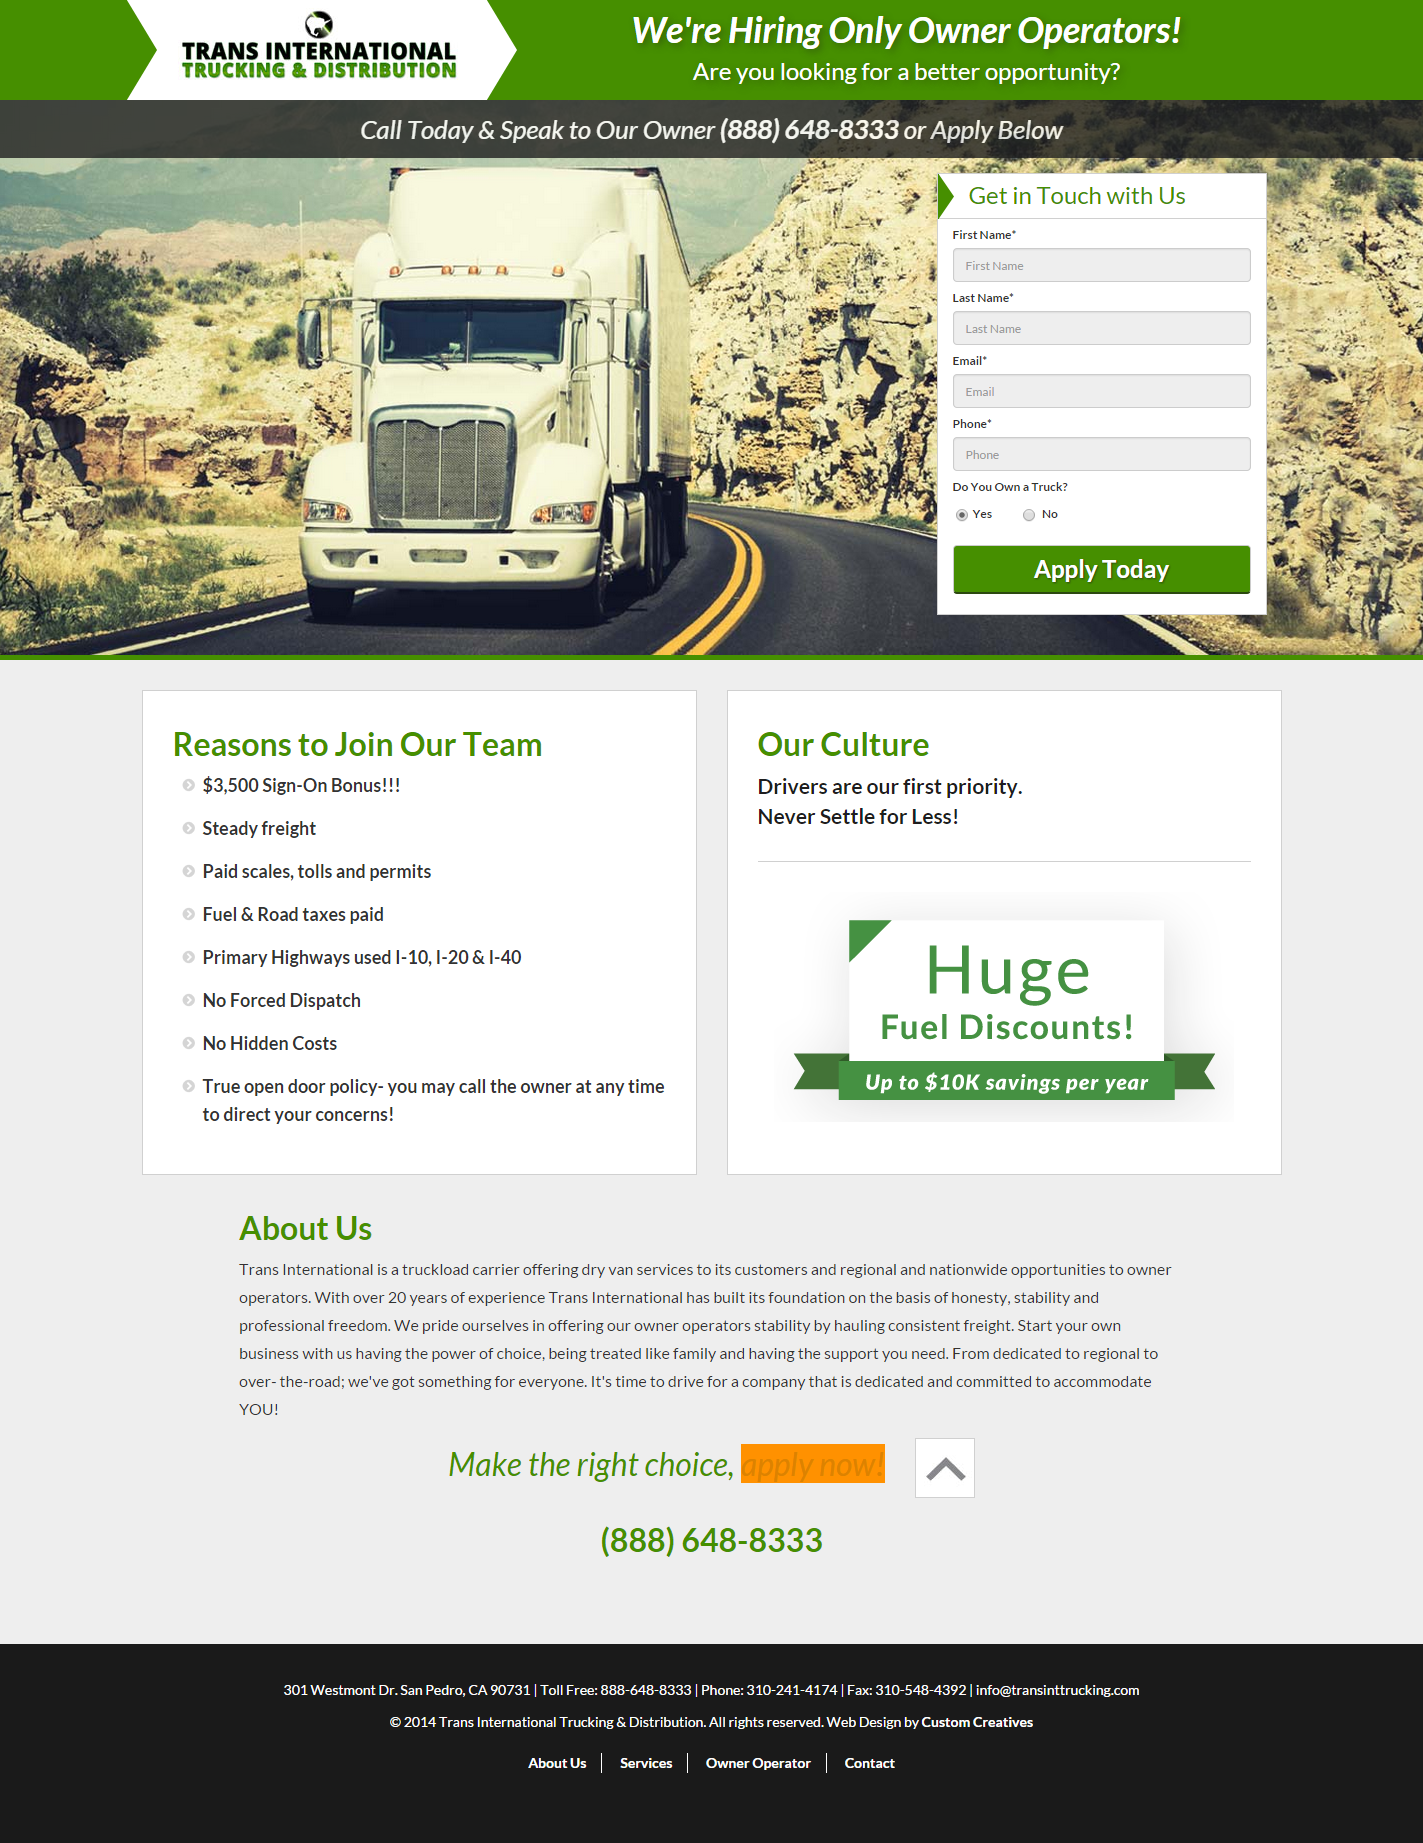 Landing Page - Trans International Trucking